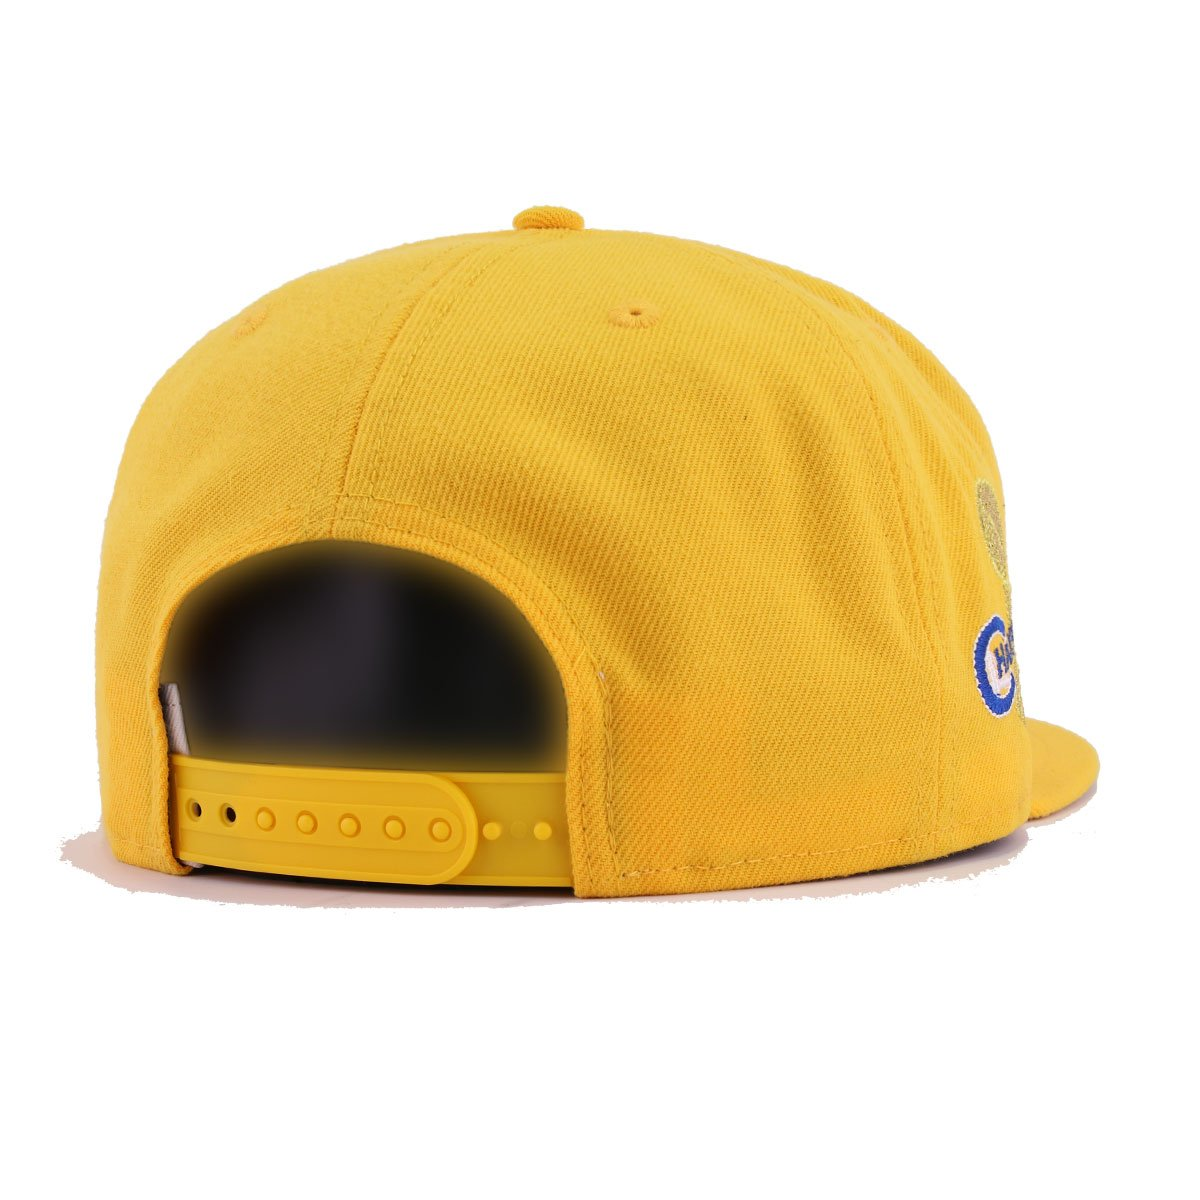 Golden State Warriors A's Gold Light Royal Blue 2015 NBA Finals Champion New Era 9Fifty Snapback